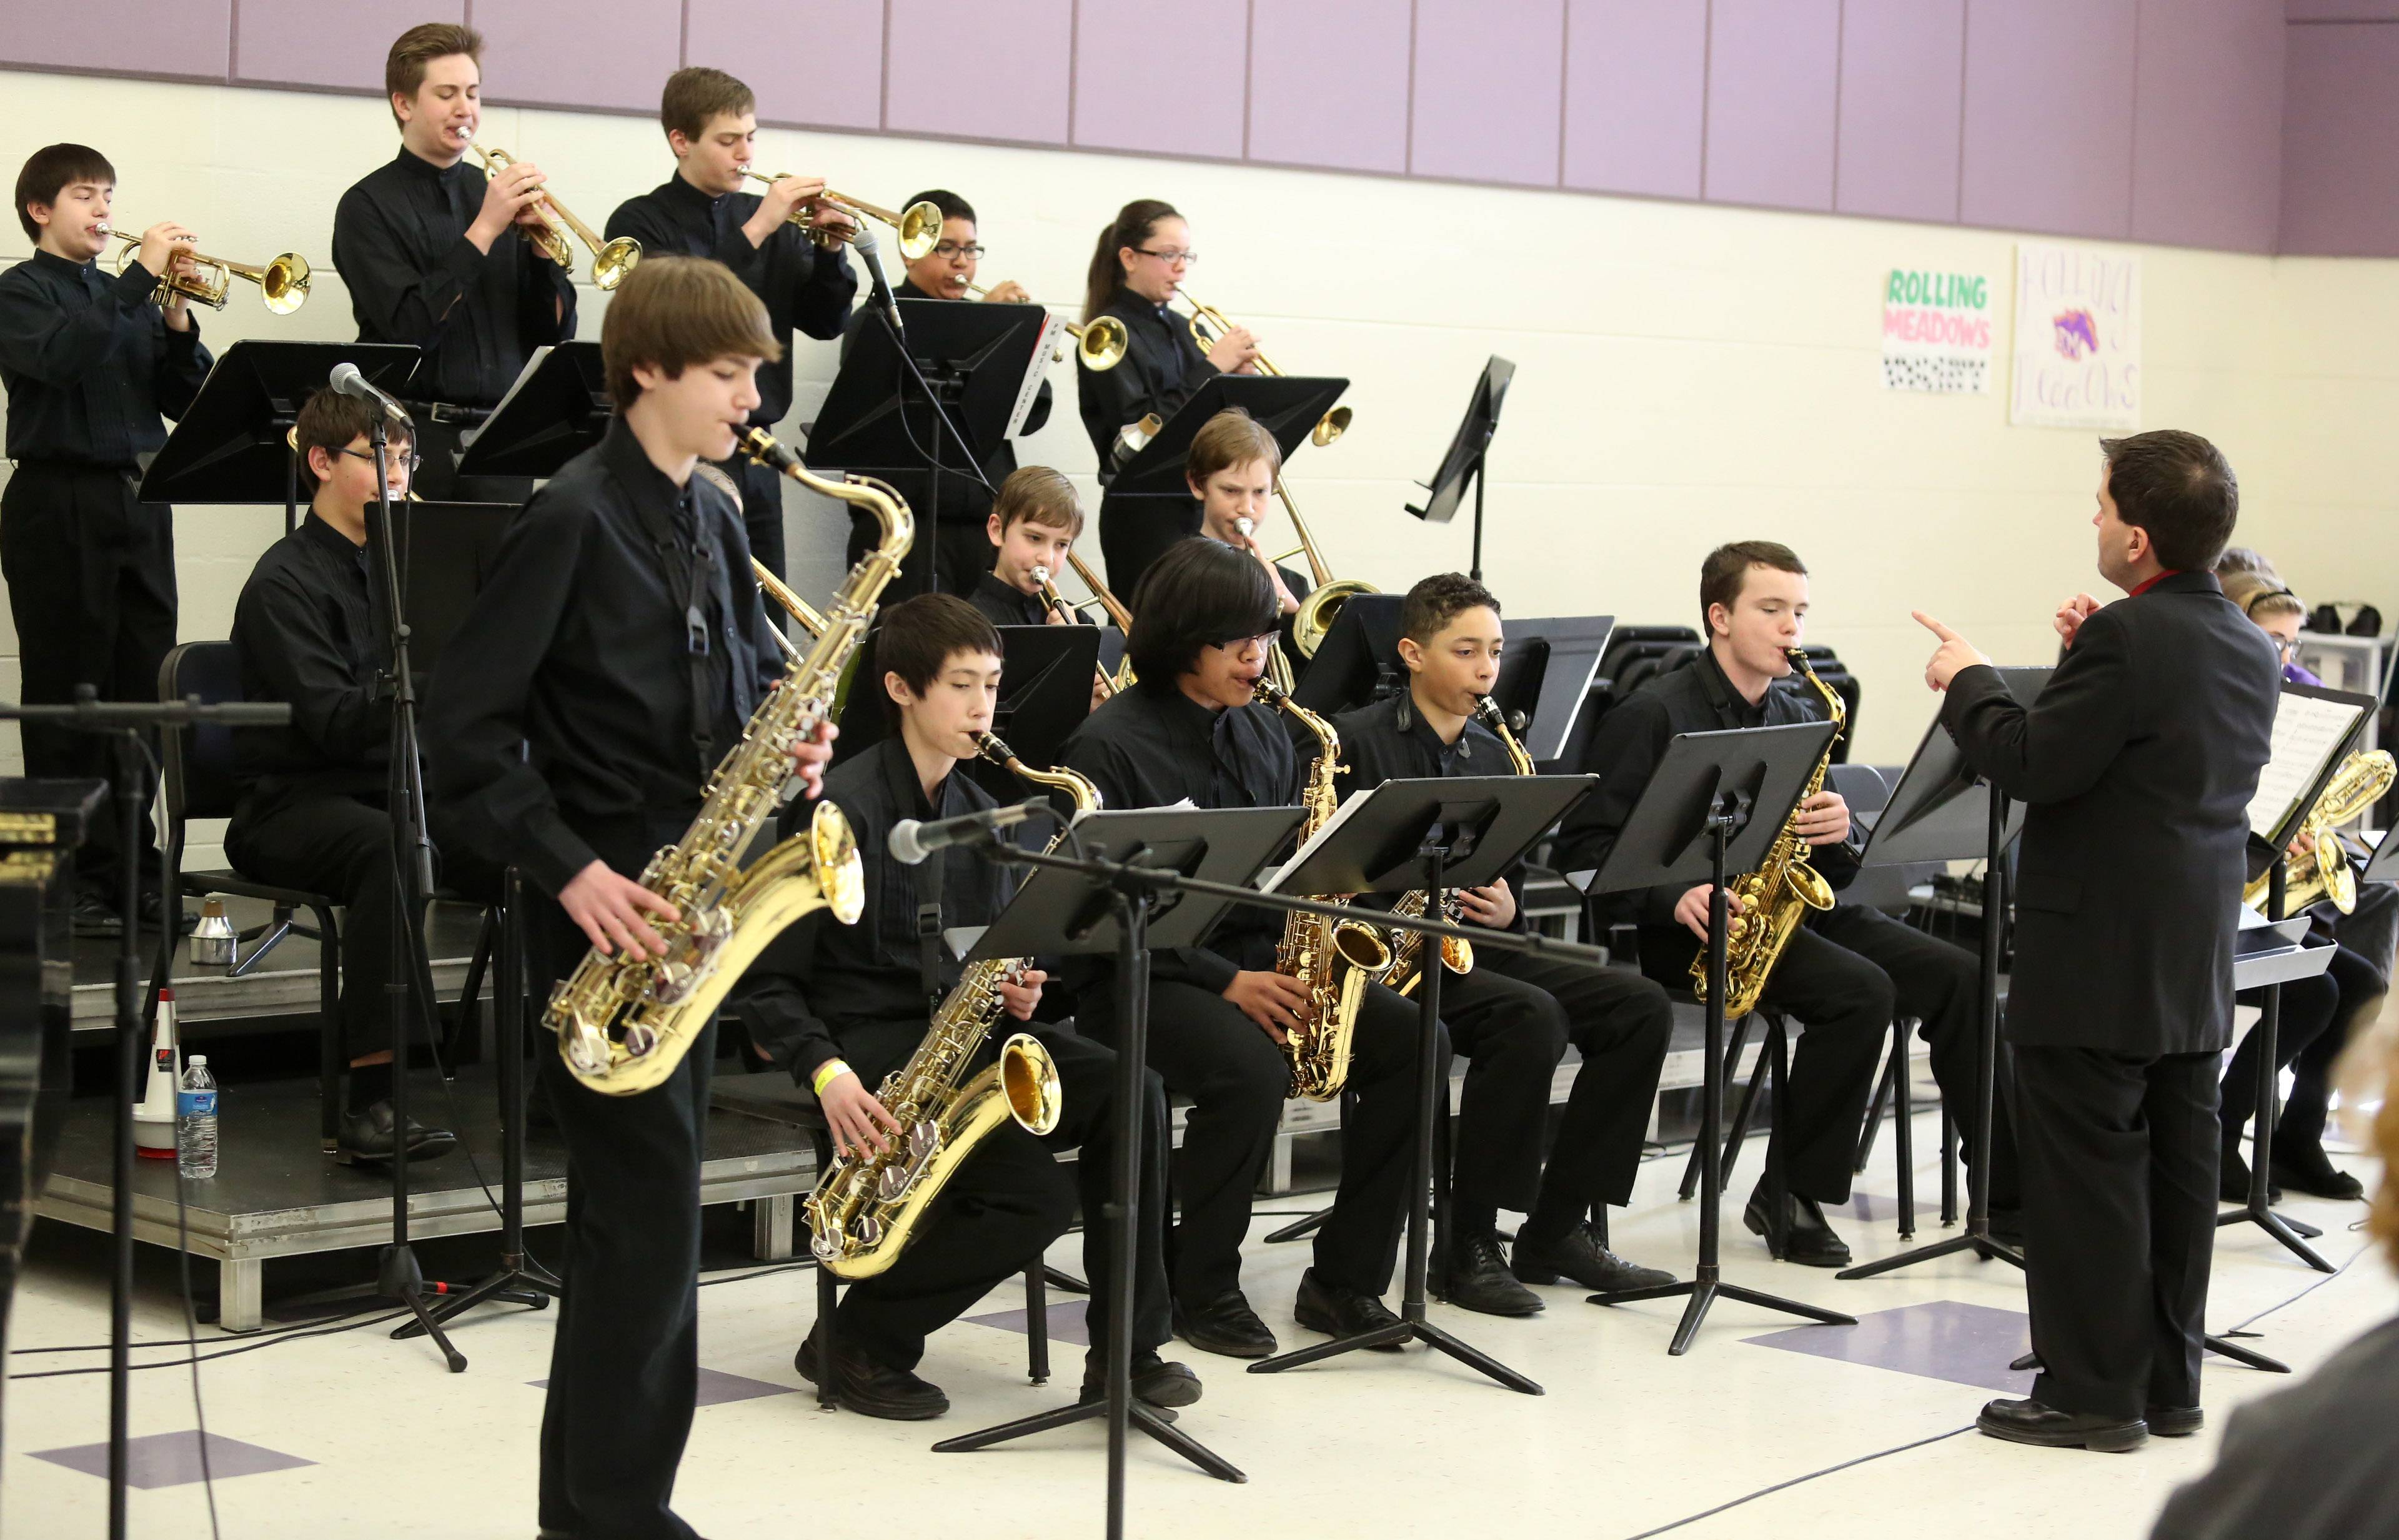 Grayslake Middle School's jazz band, directed by Steve Thomas, performs at the 29th annual Jazz in the Meadows program on Saturday in the band room at Rolling Meadows High School.